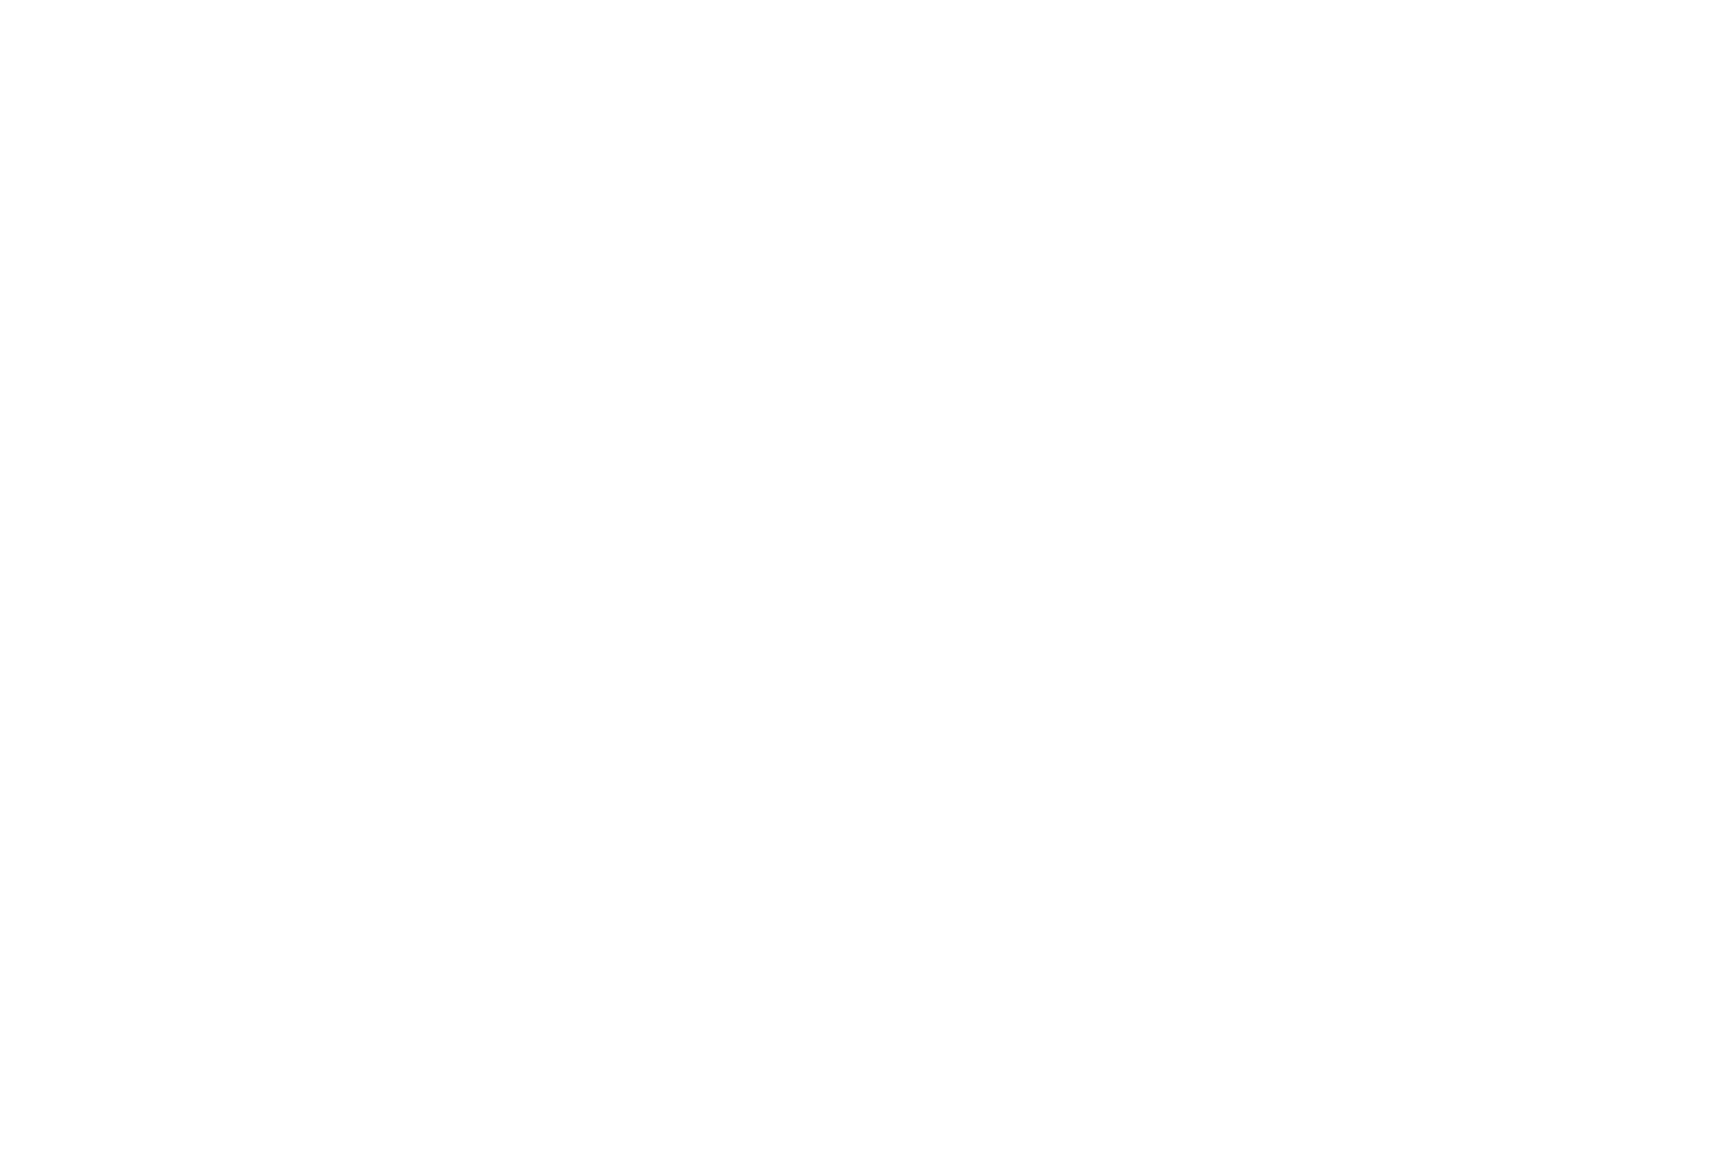 OFFICIAL SELECTION - Voices in Black and White - 2019.png